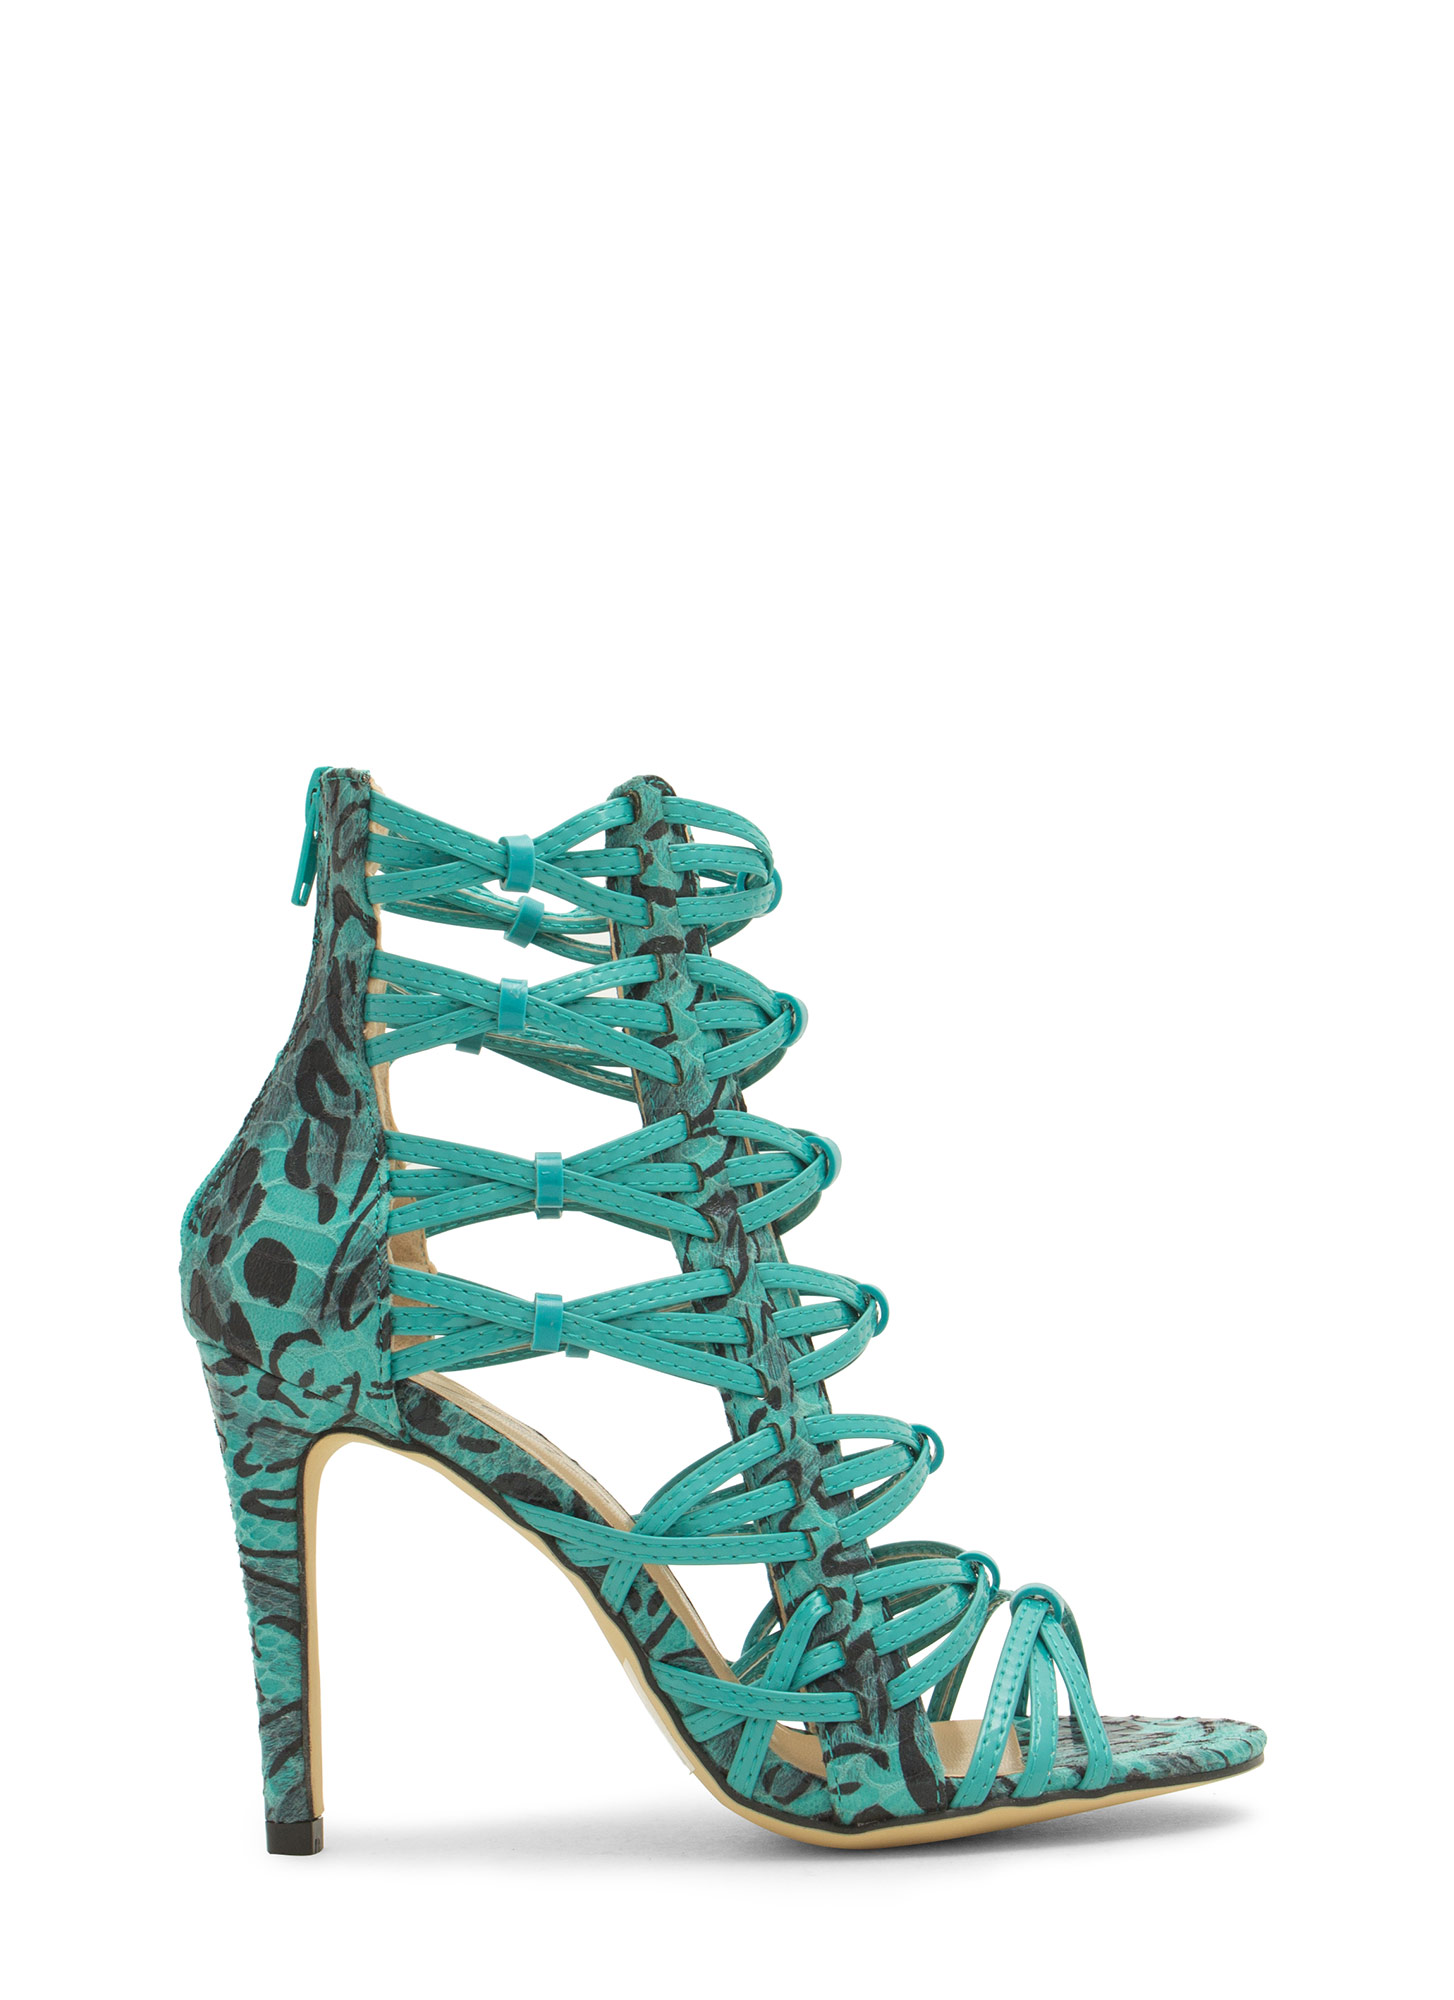 Wild Thing Crisscrossed Heels SEAGREENMLT